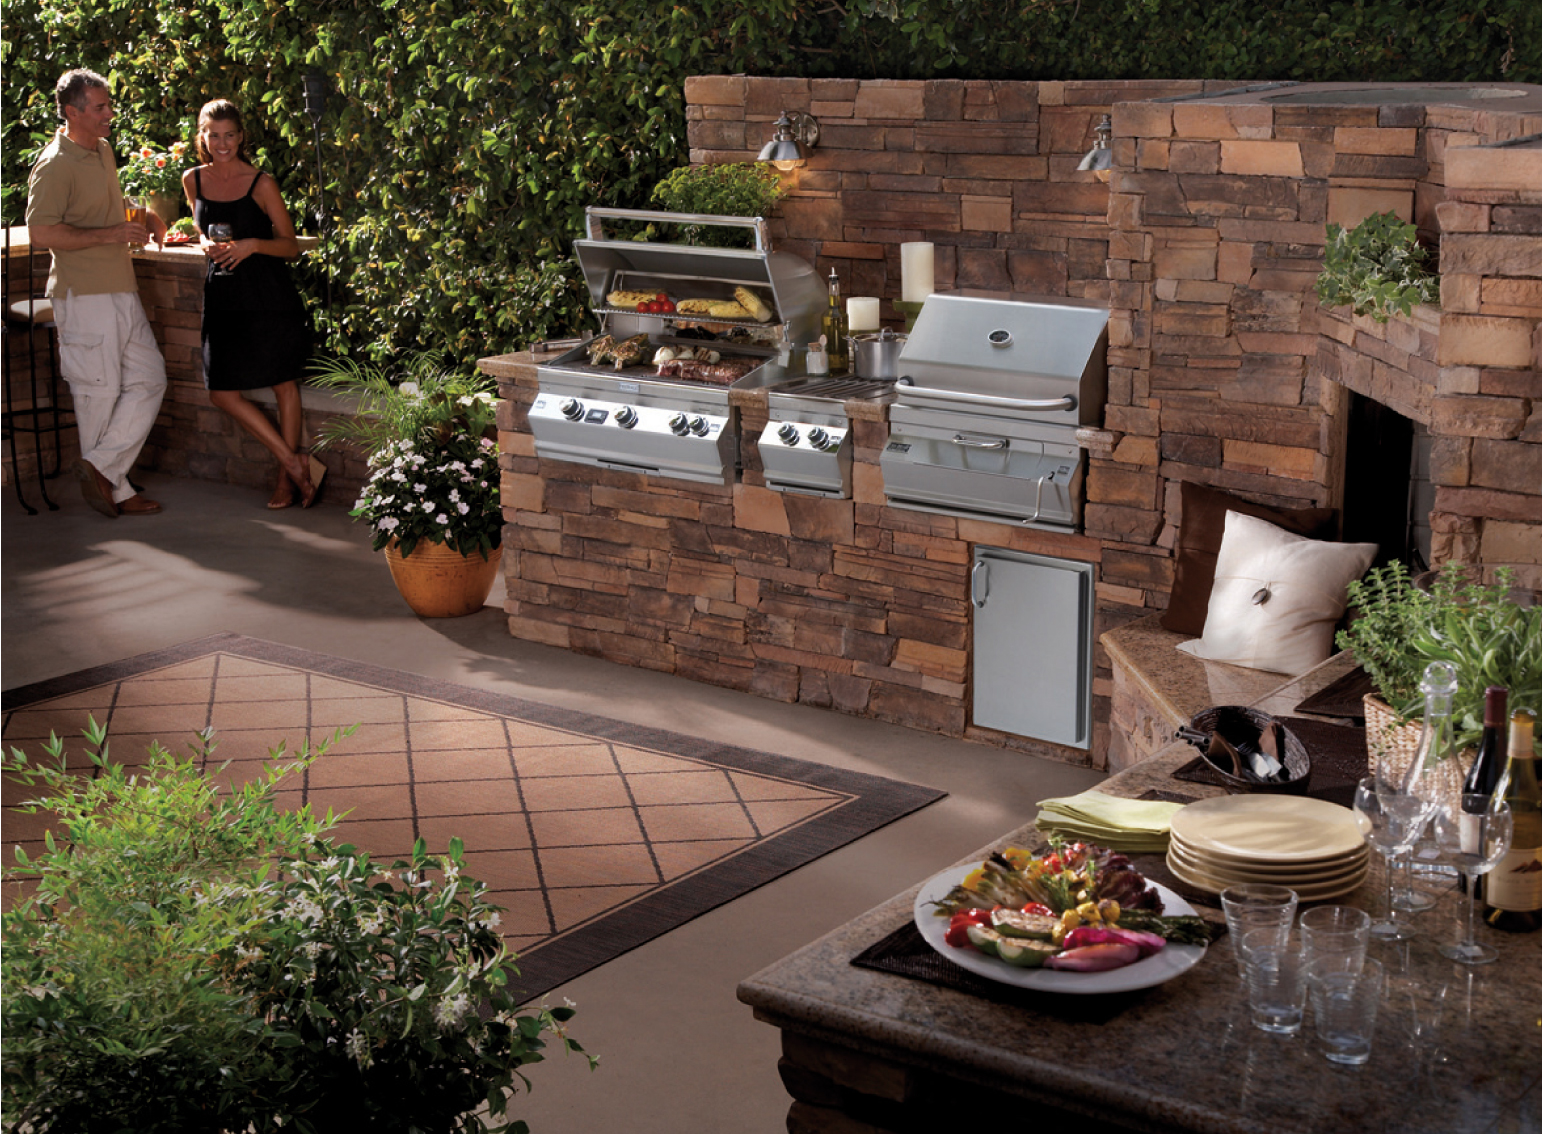 Ultimate outdoor kitchens cook dine entertain al fresco for Backyard barbecues outdoor kitchen